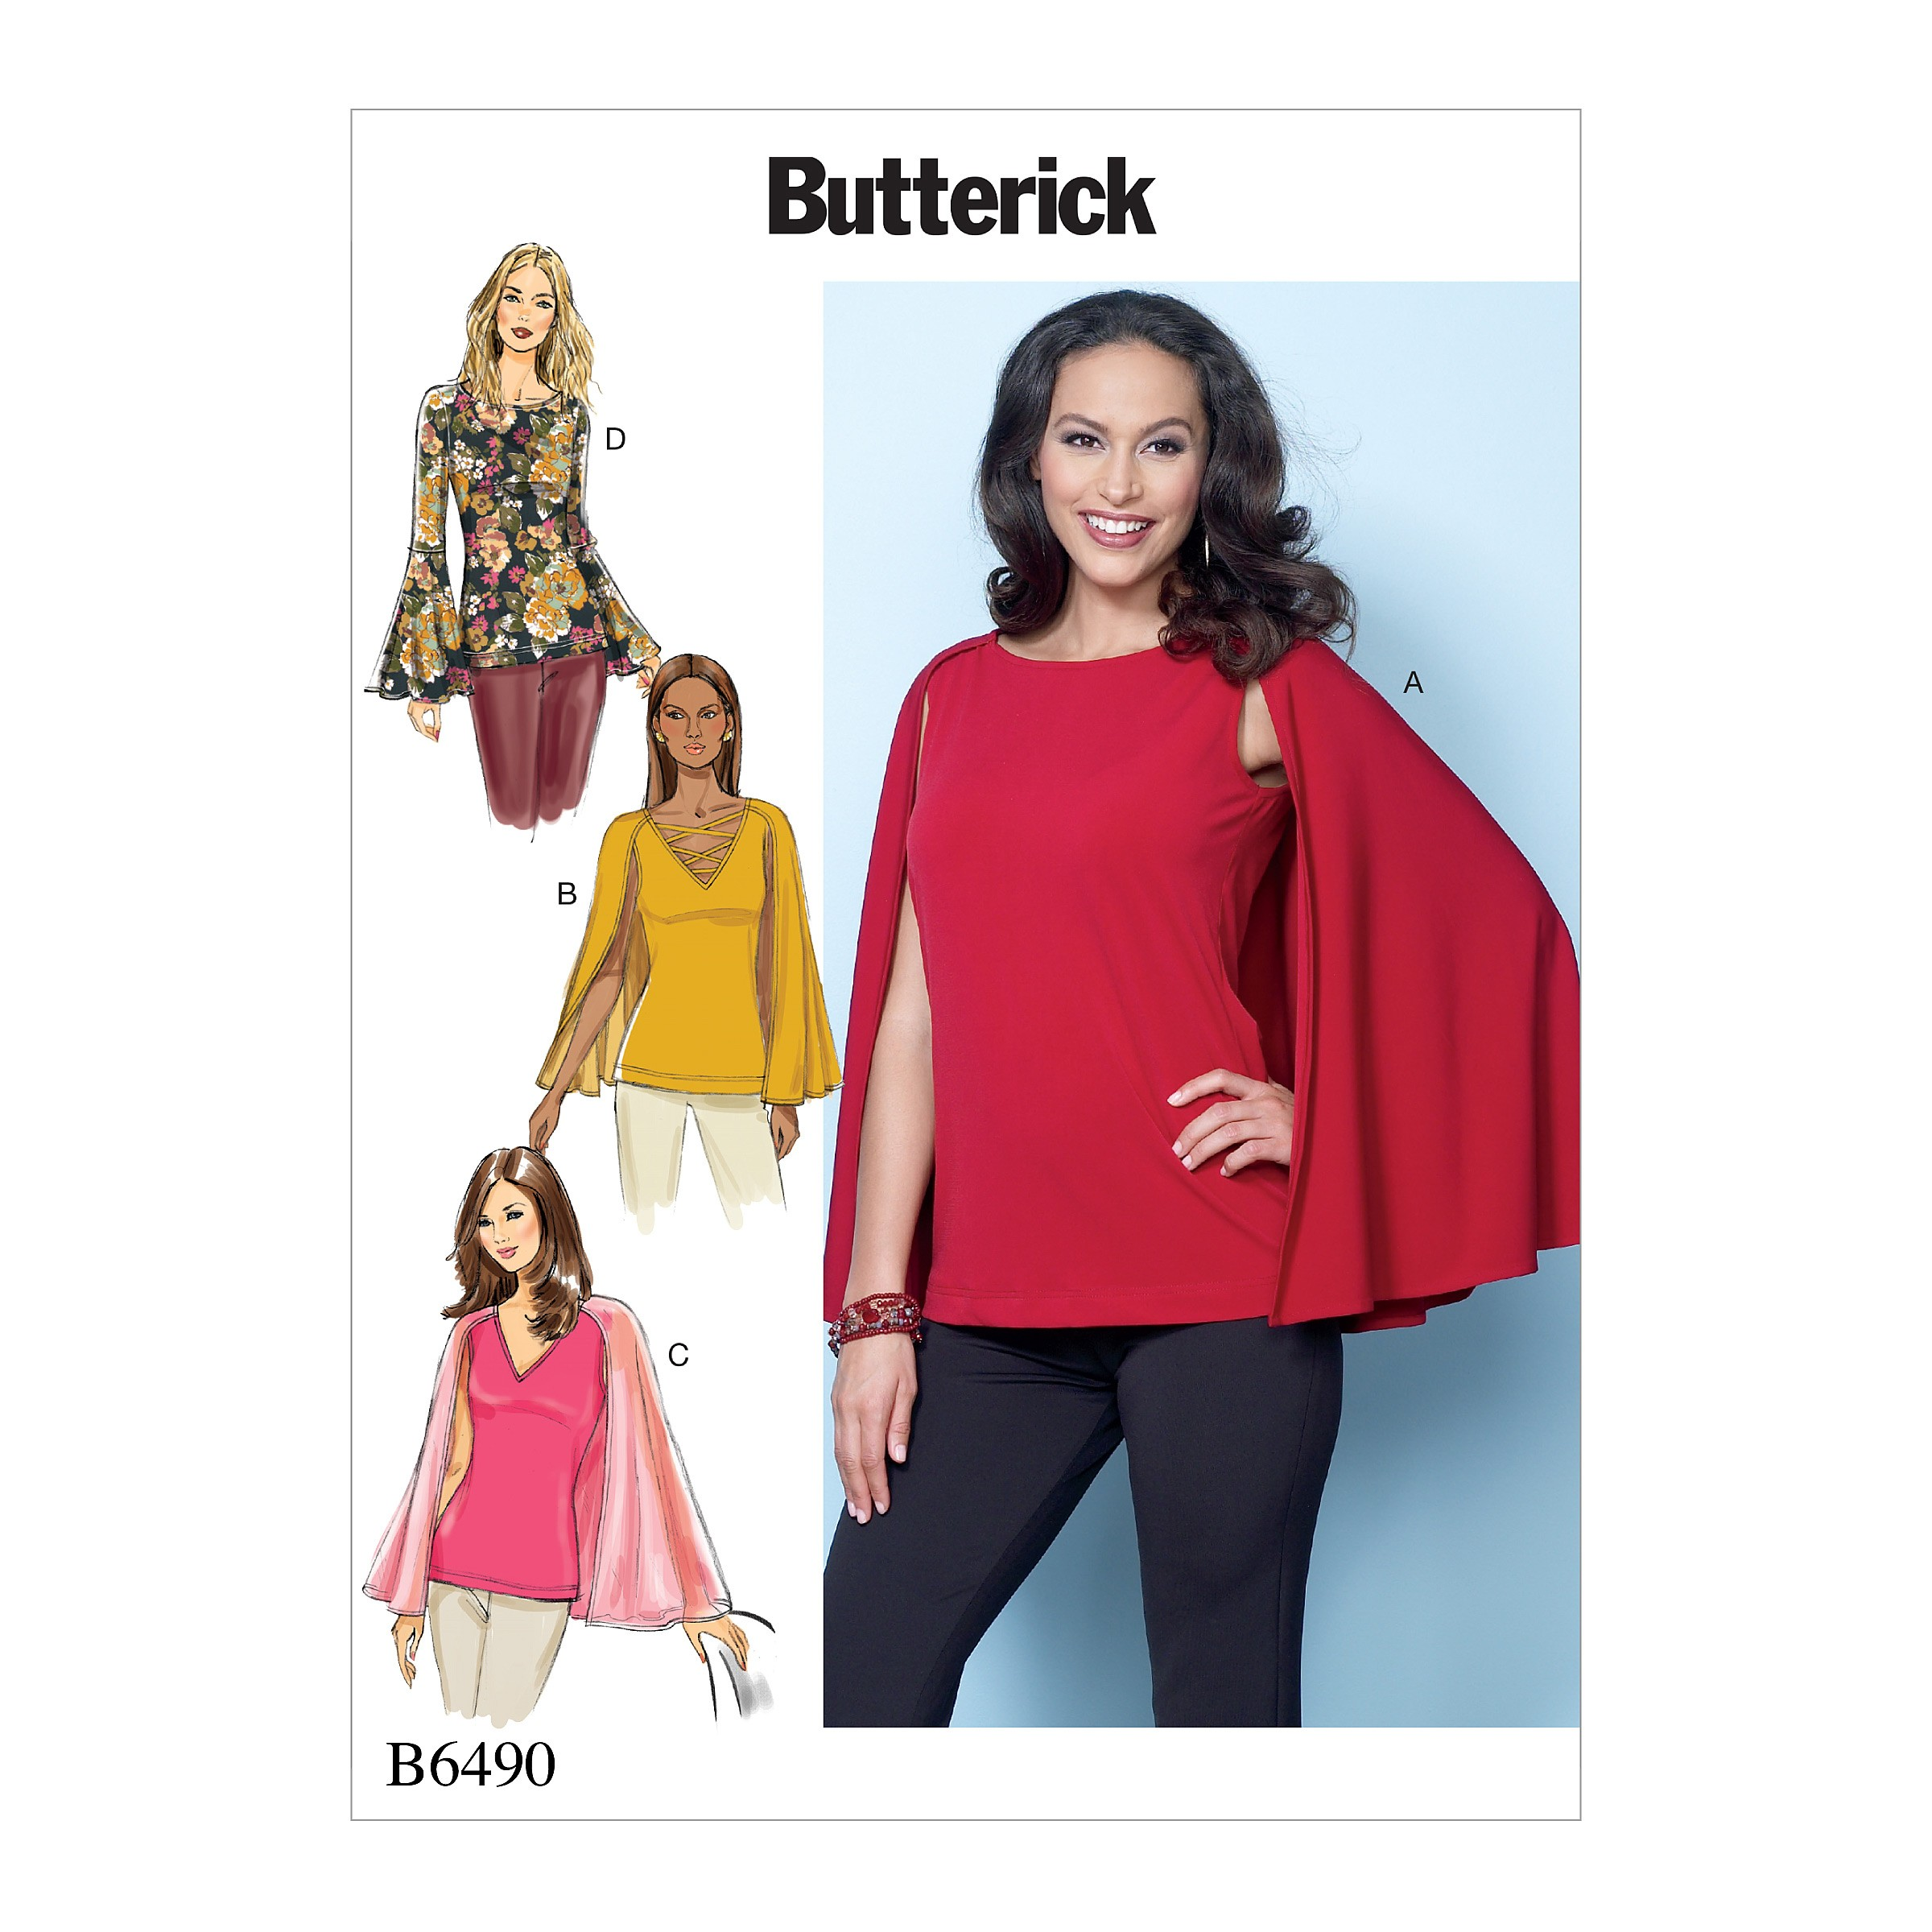 Butterick Sewing Pattern 6490 Misses' Tops With Attached Cape And Sleeve Variations.